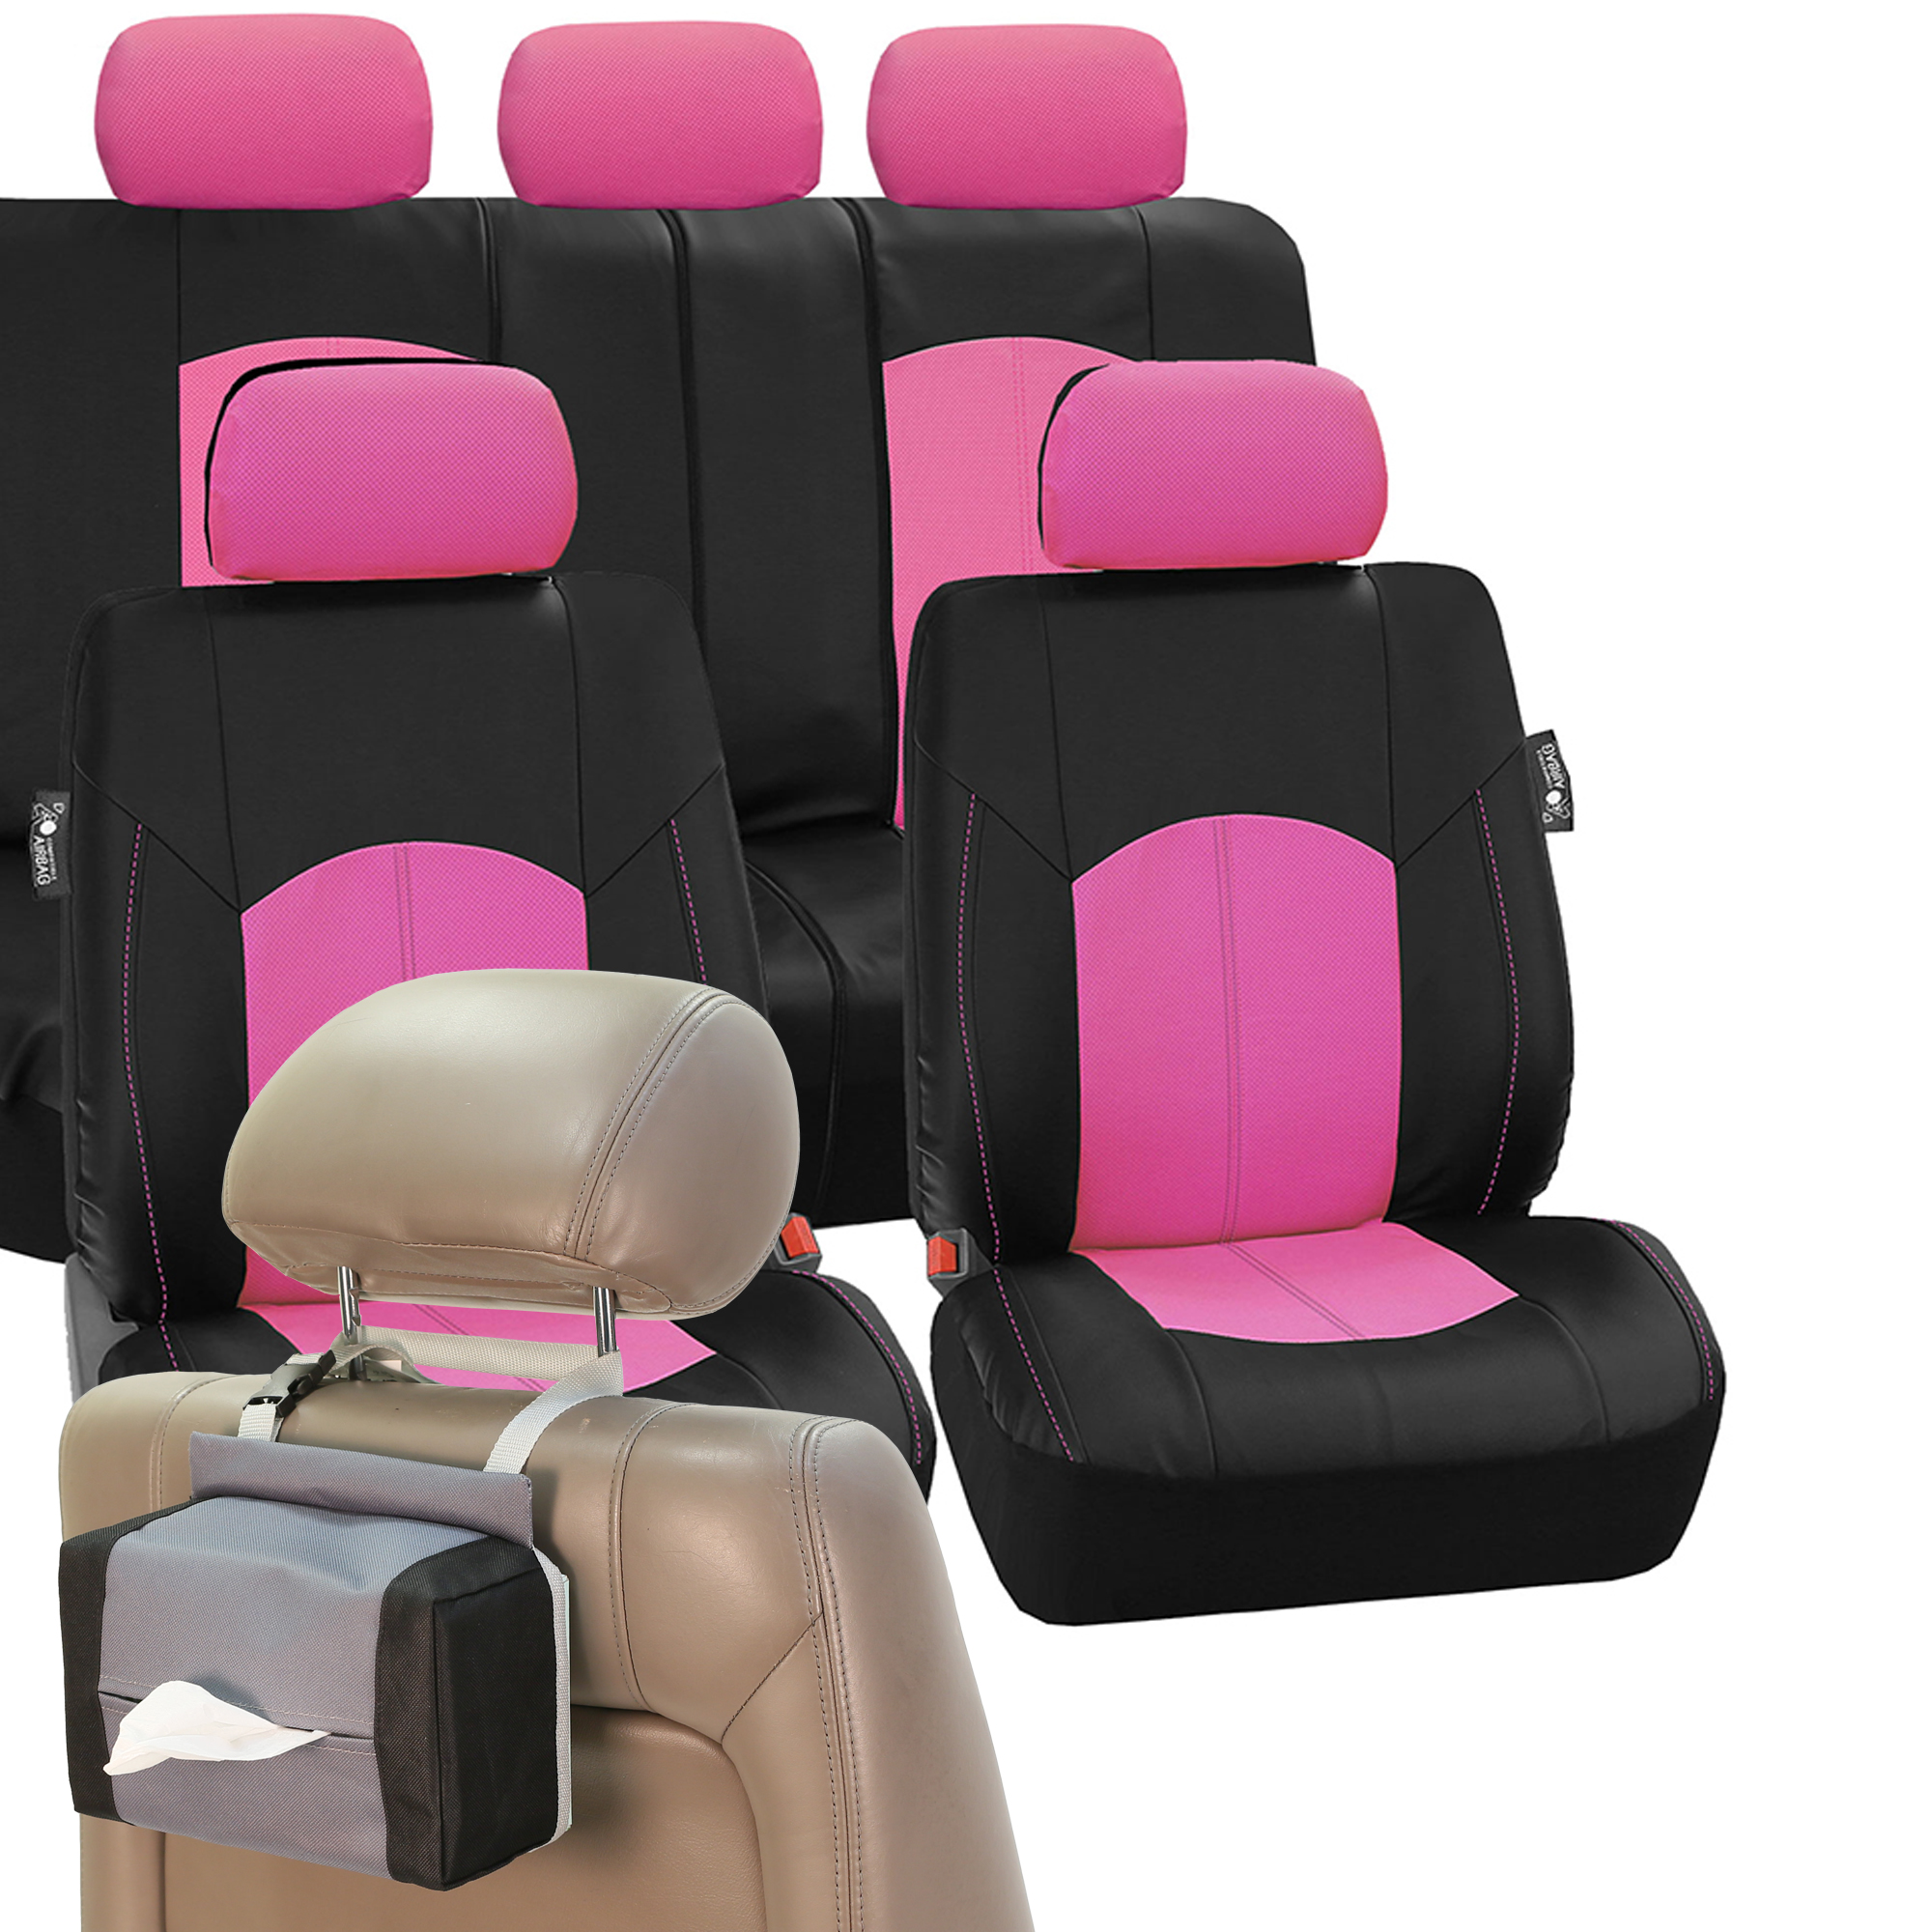 Perforated Leather Seat Covers Car Seat Covers For Auto Airbag